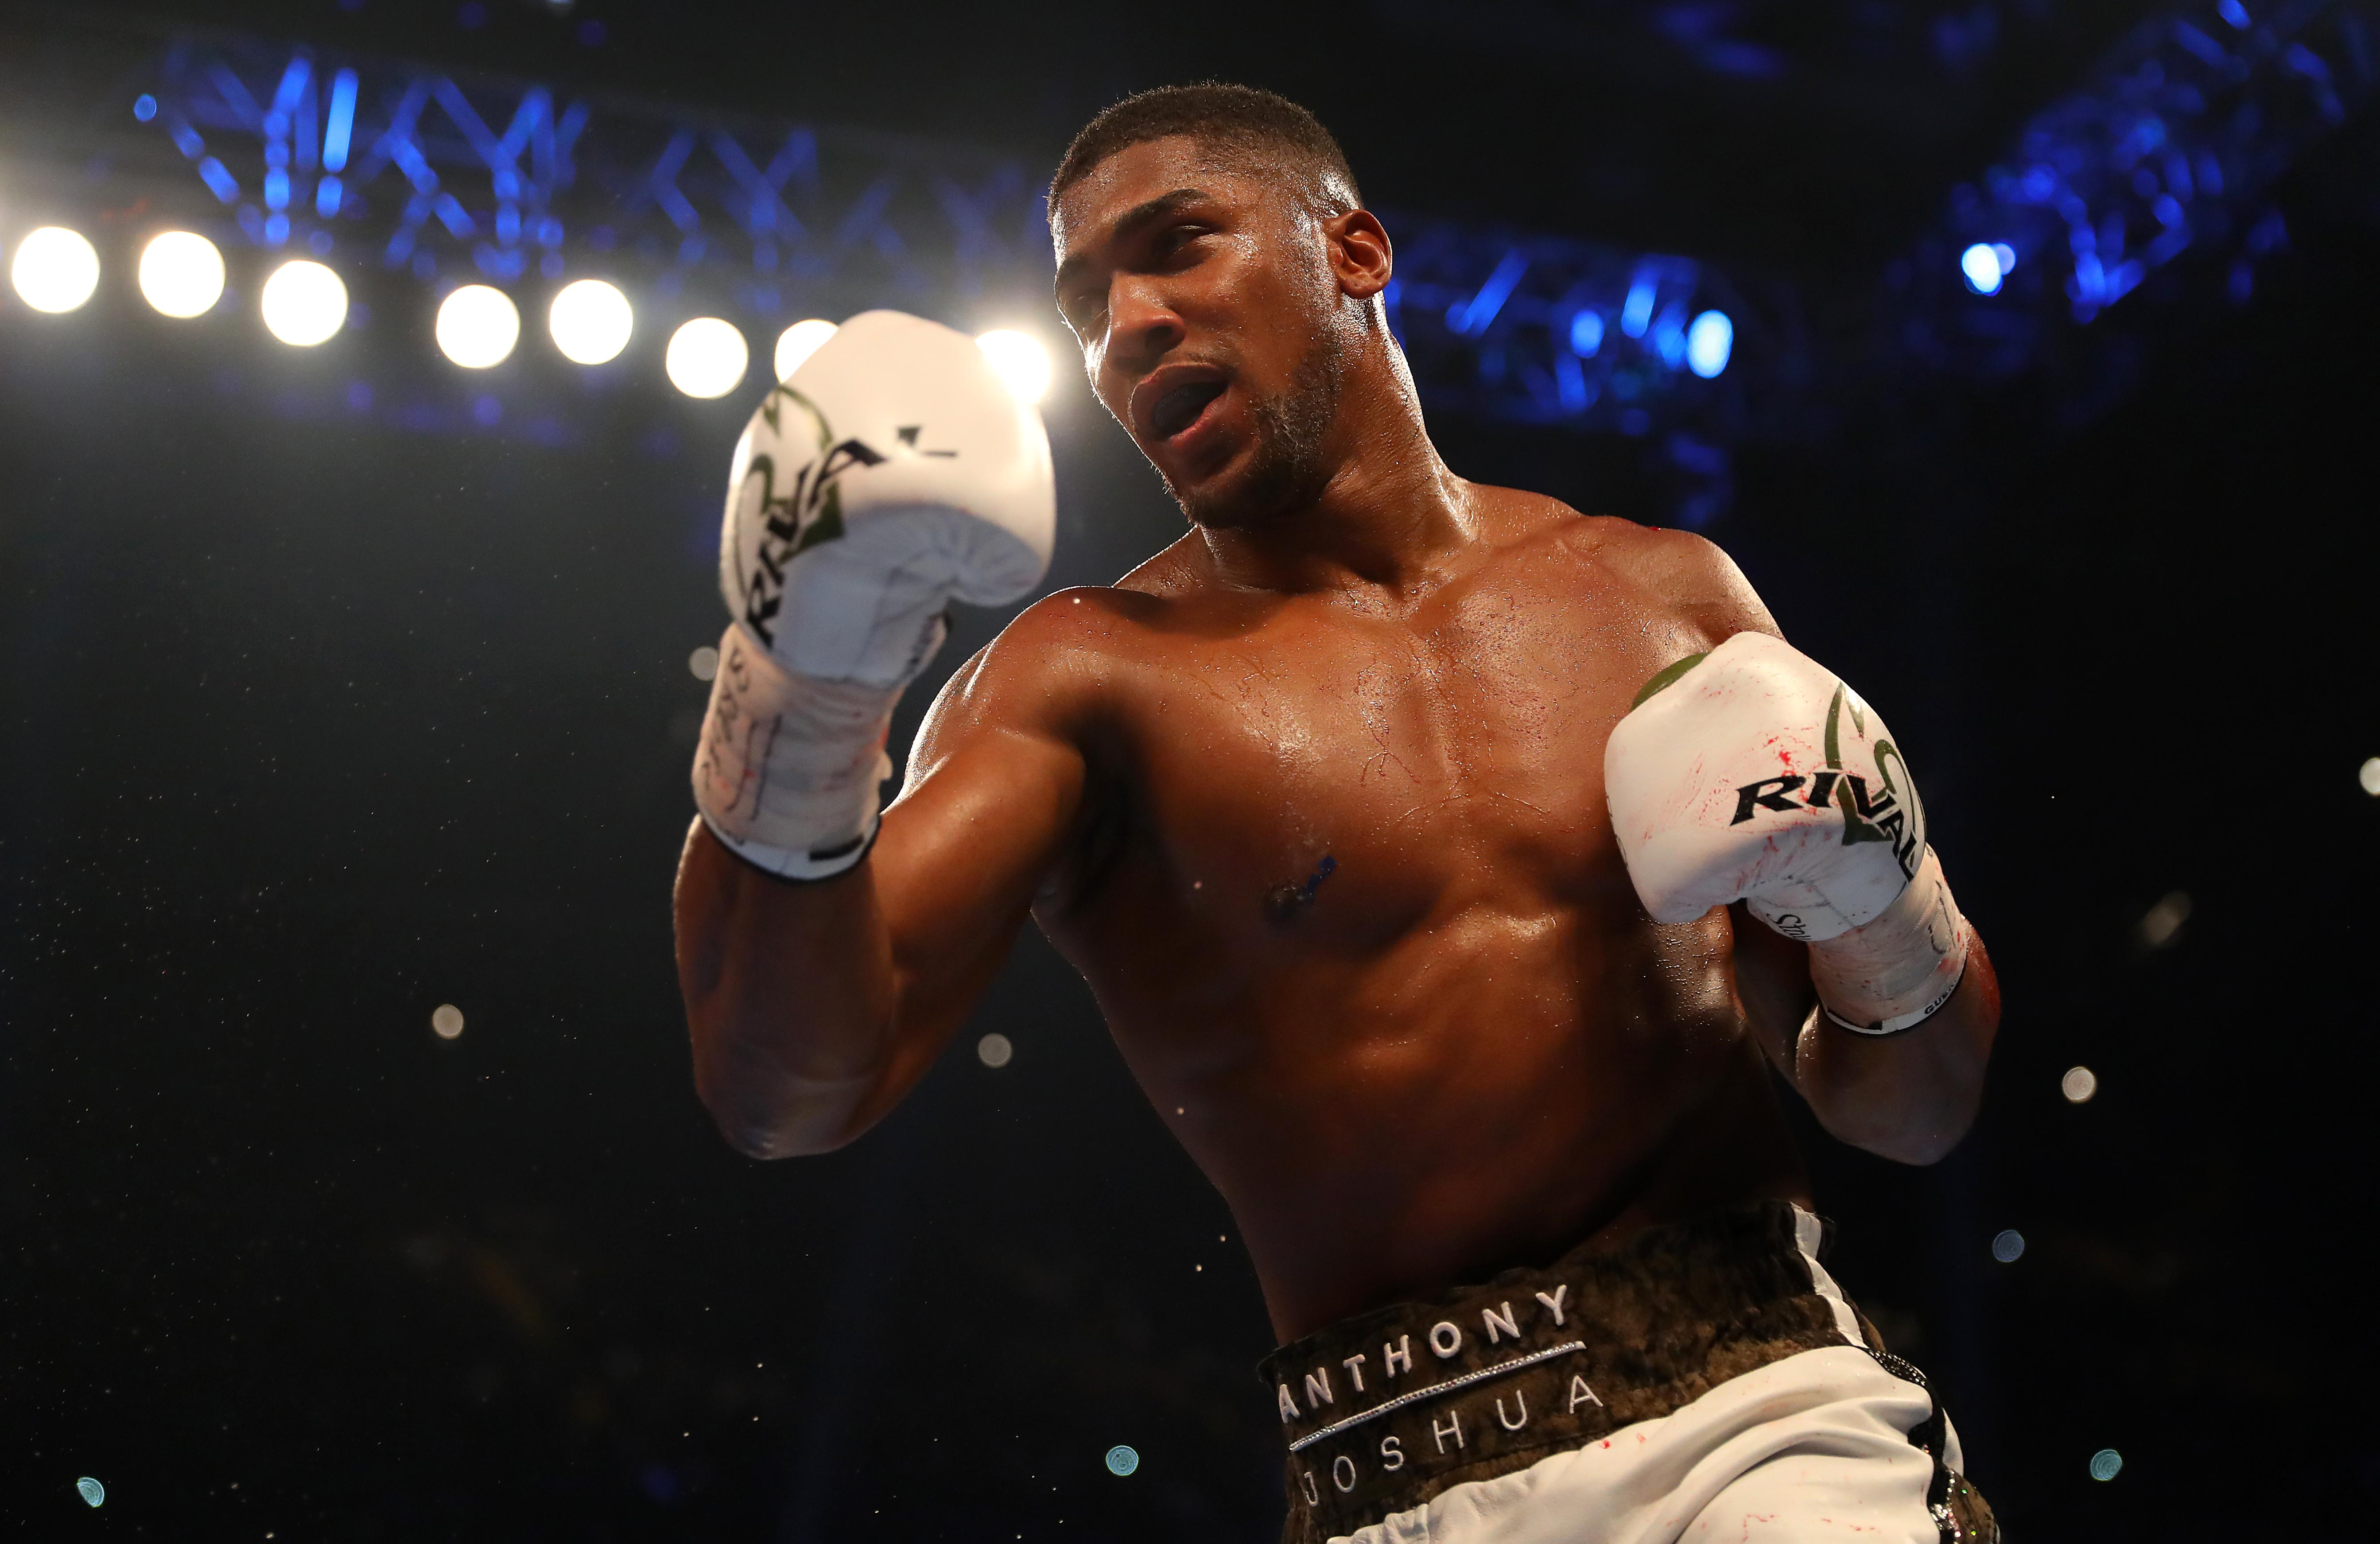 Joshua's last outing in the ring was in April when he beat Joseph Parker to win the WBO title